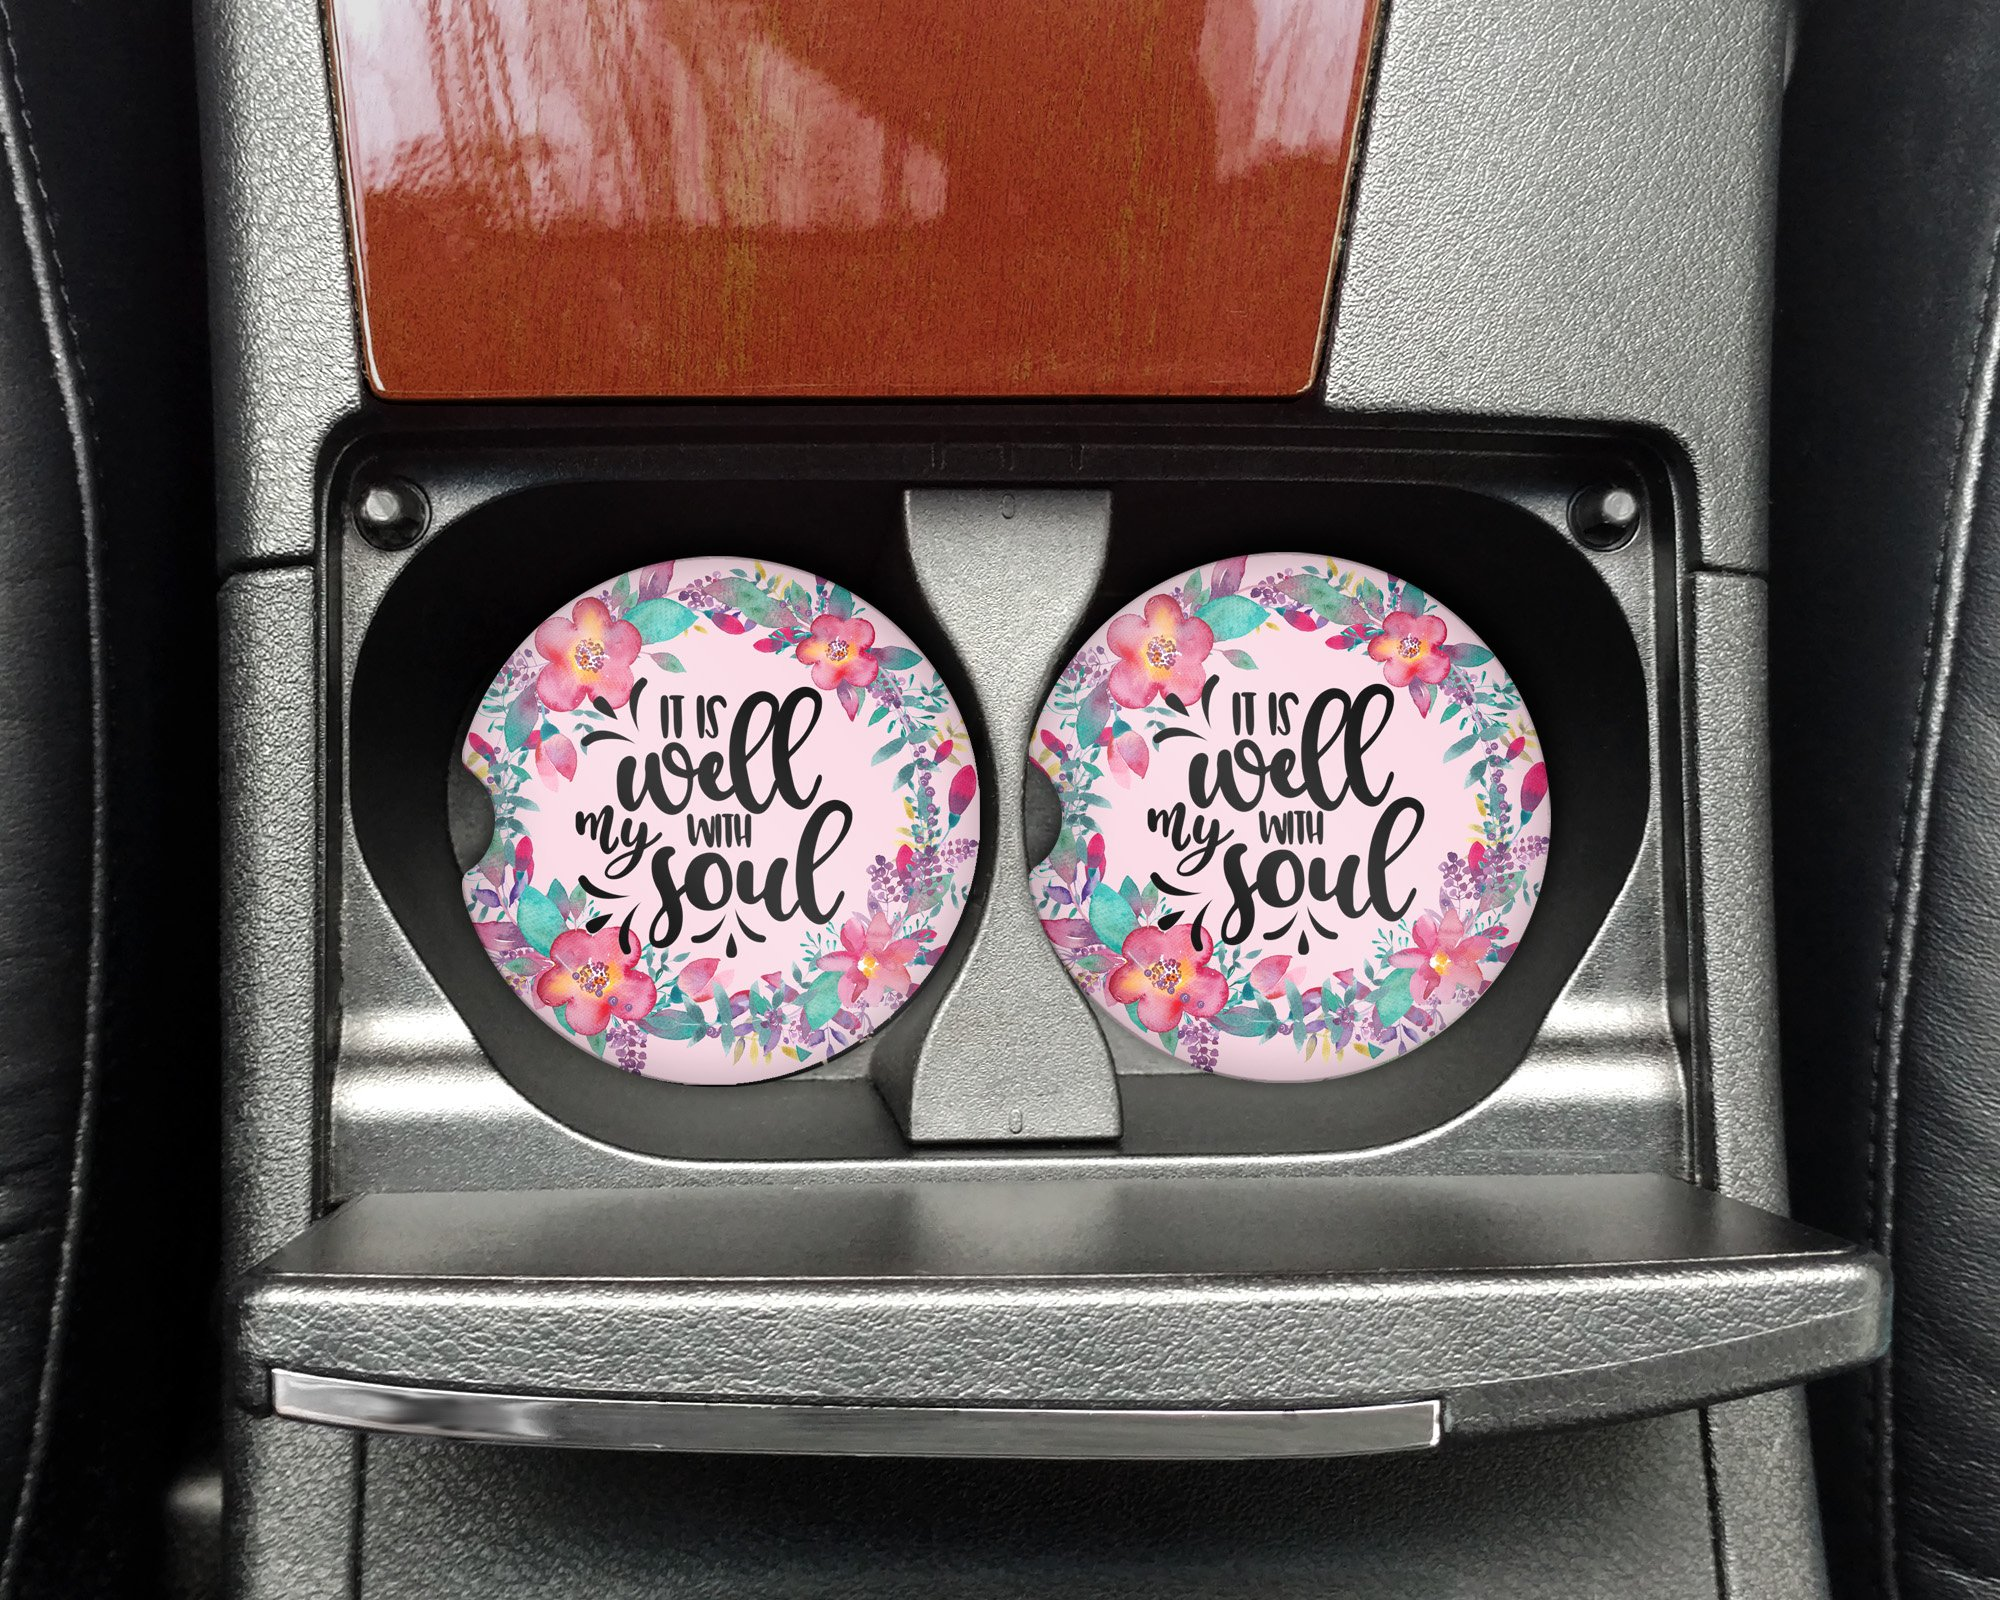 It is well with my soul - Pink floral Car coasters - Sandstone auto cup holder coasters Christian motivational bible verse - Gifts for women